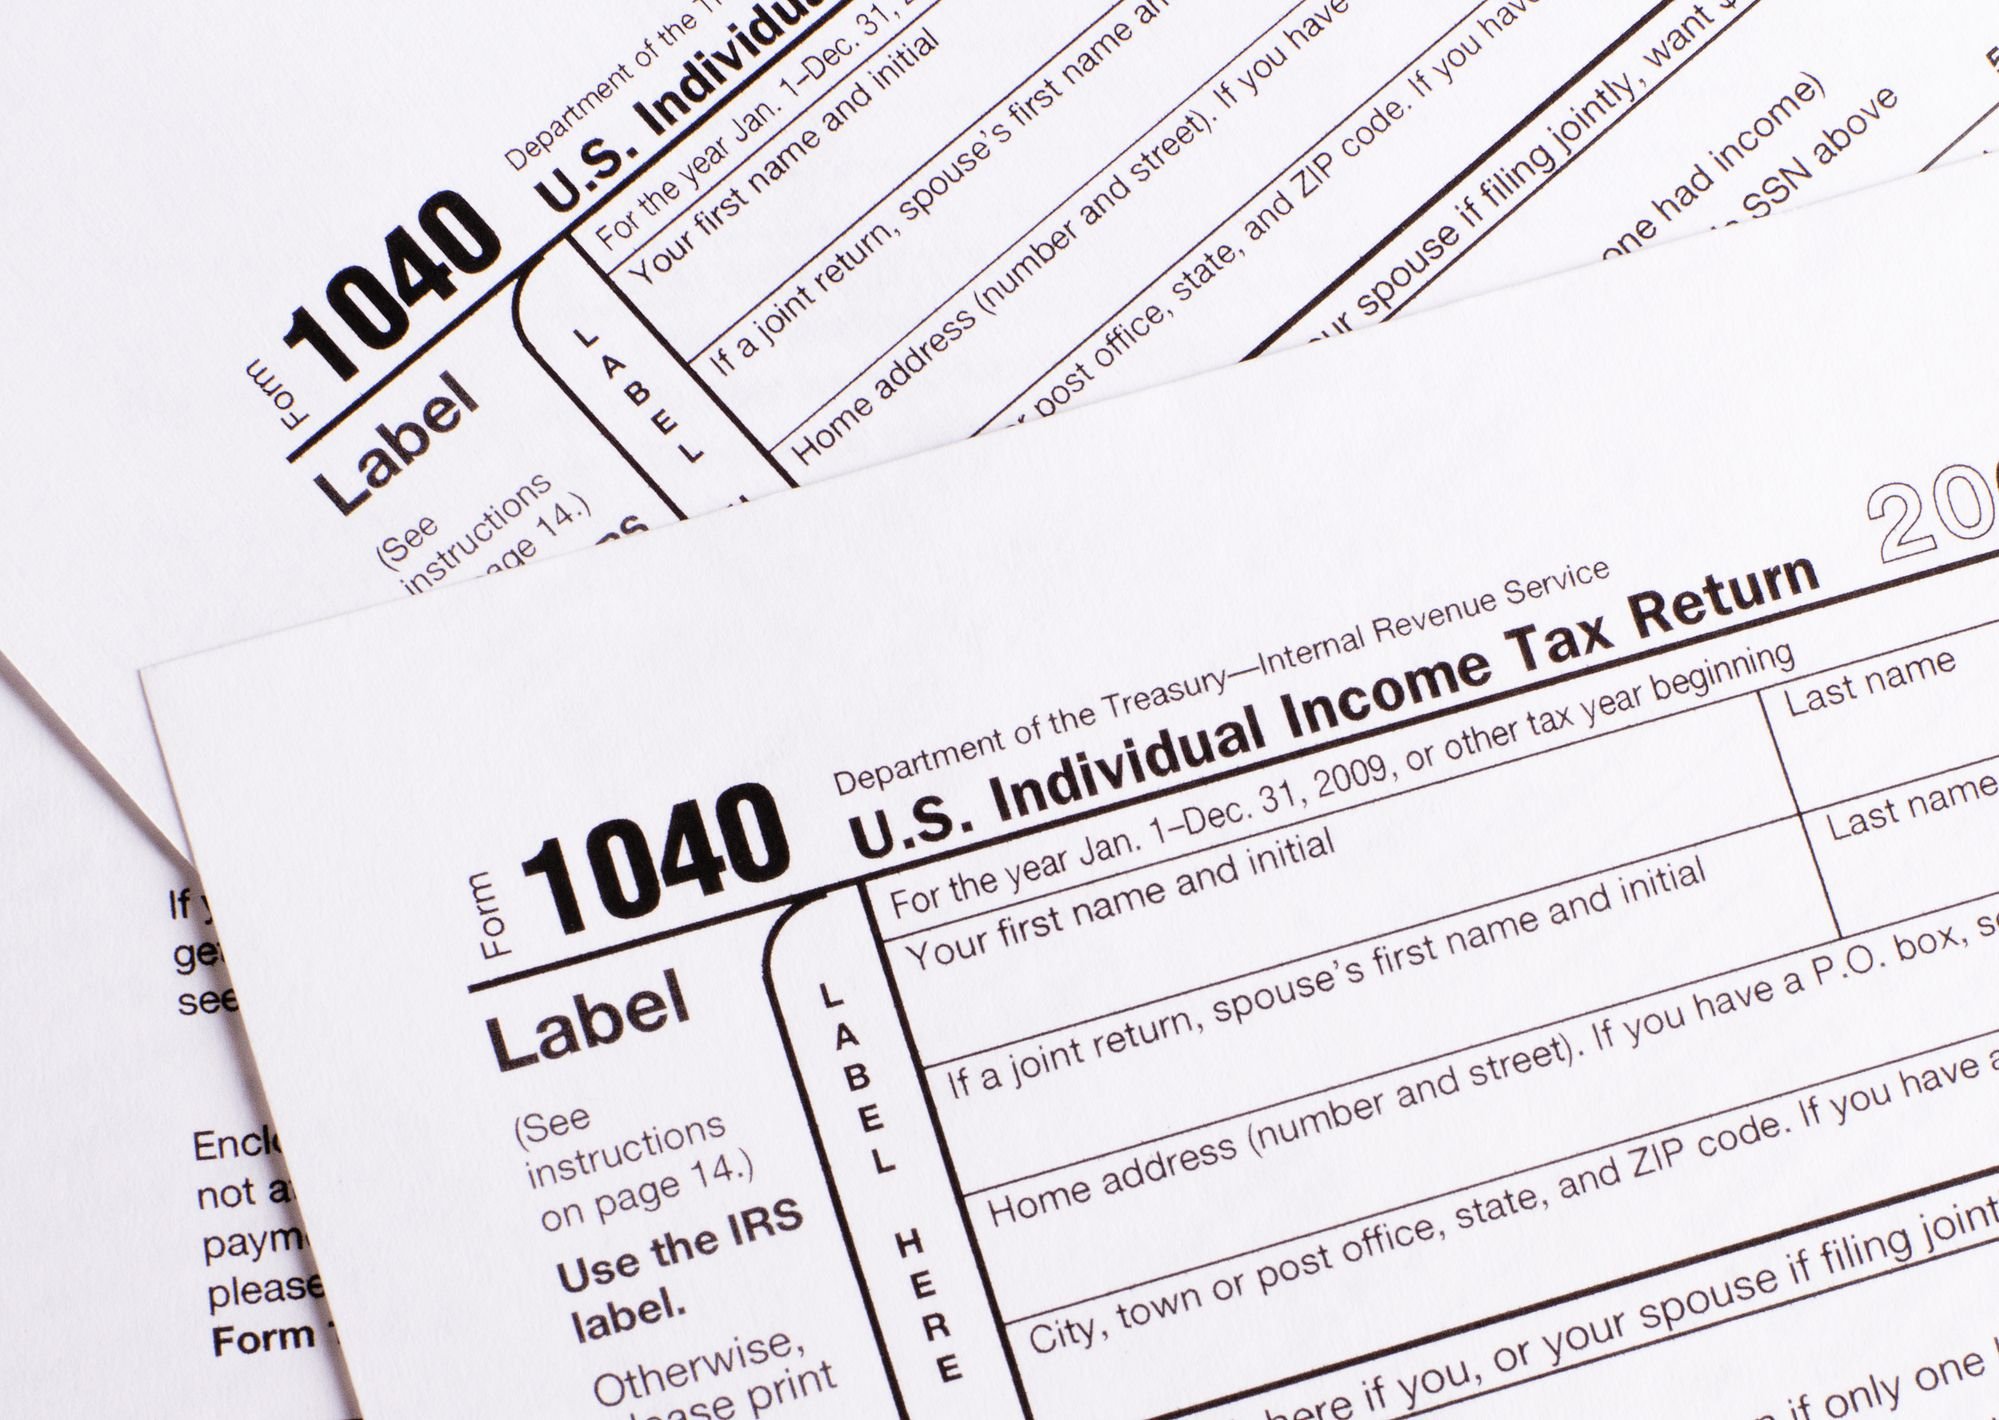 How a Tax Refund Can Cost You More